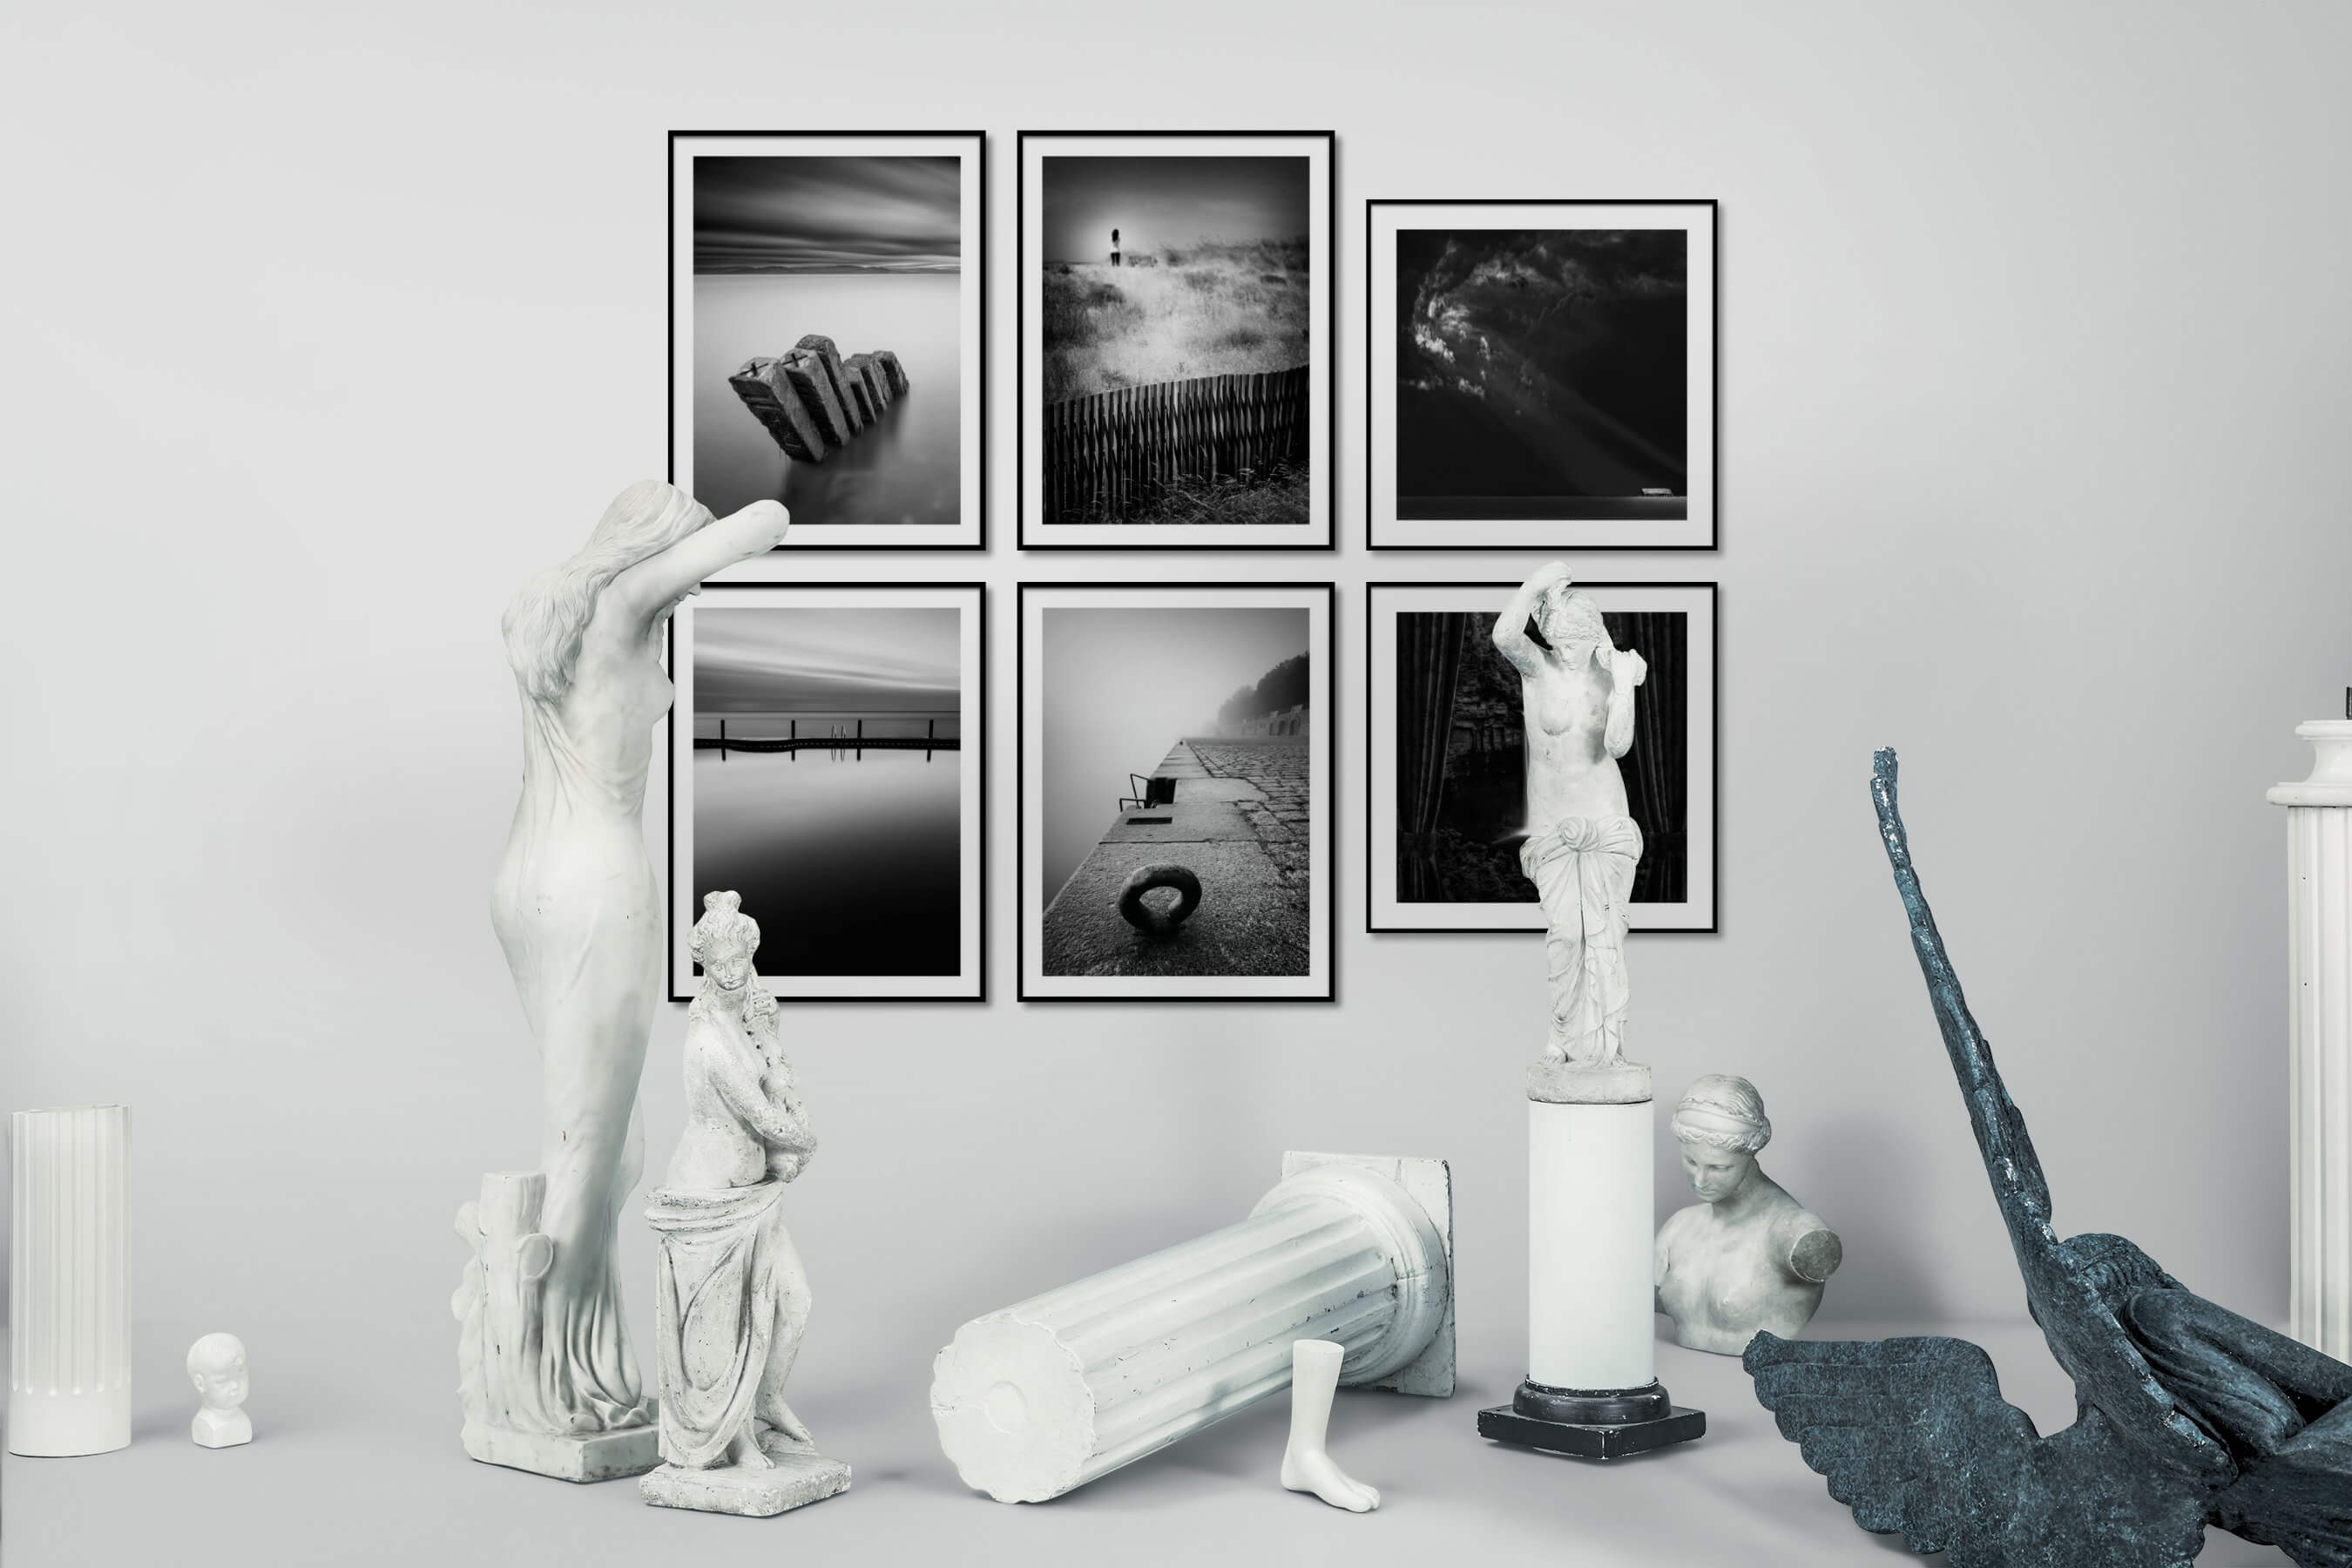 Gallery wall idea with six framed pictures arranged on a wall depicting Black & White, Mindfulness, Country Life, For the Minimalist, Beach & Water, and Nature